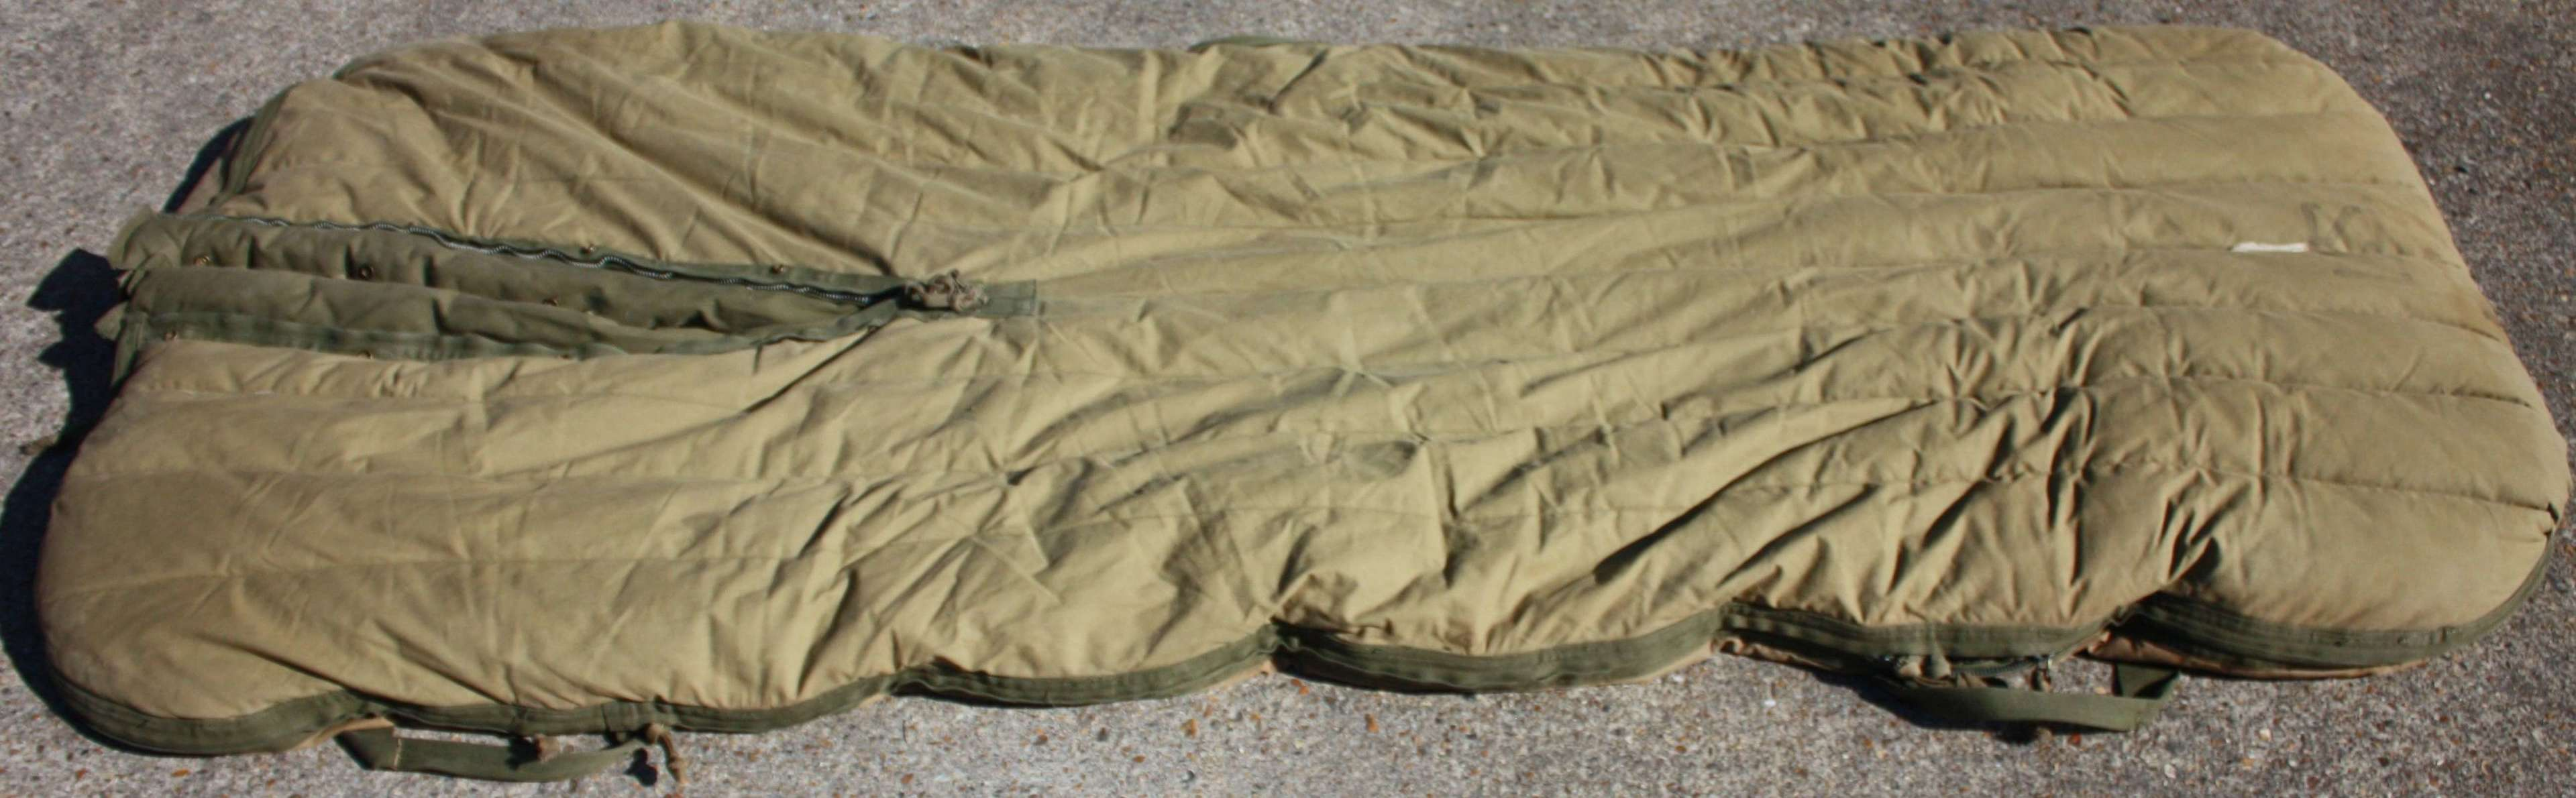 A MARCH 1944 DATED US ARMY CASUALTY SLEEPING BAG